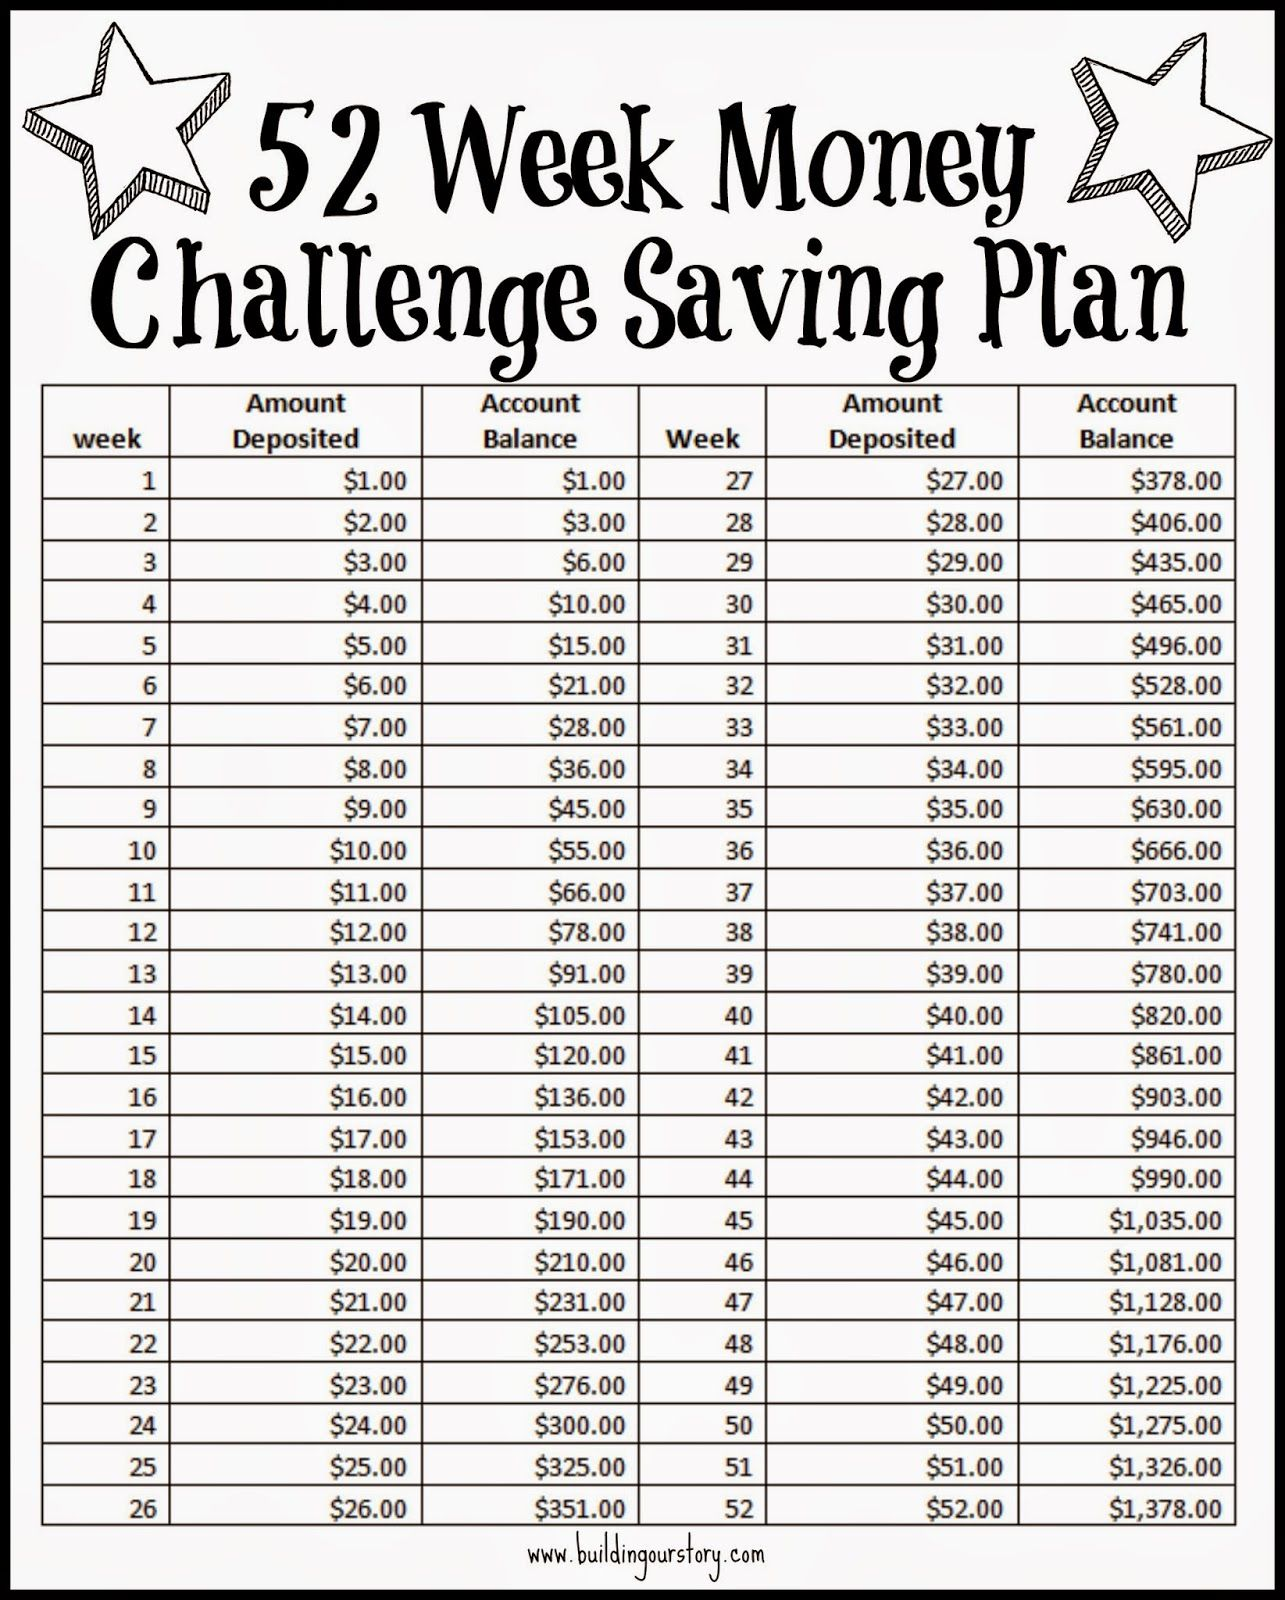 52 week money challenge saving plan free printable for Save money building a house